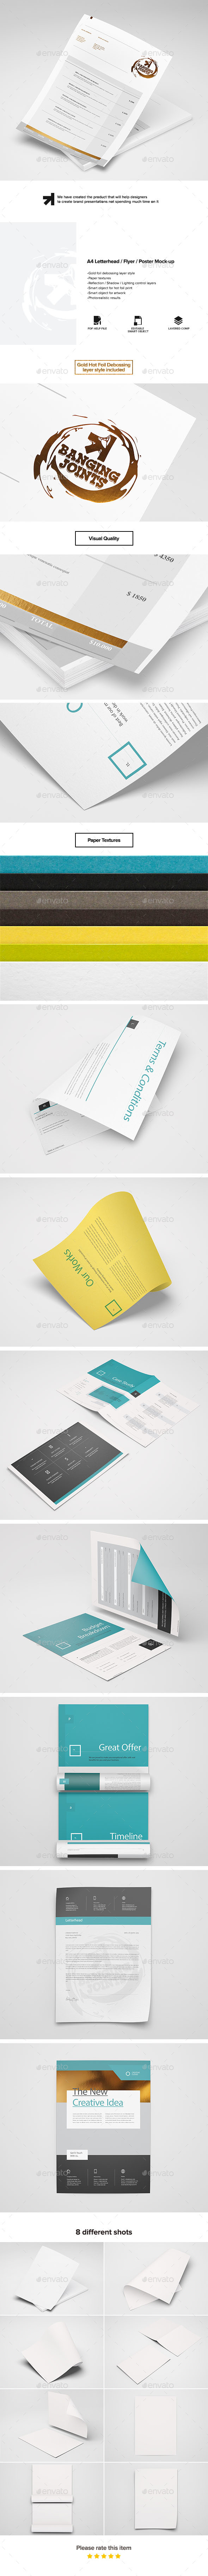 A4 Letterhead / Flyer / Poster Mock-up - Stationery Print